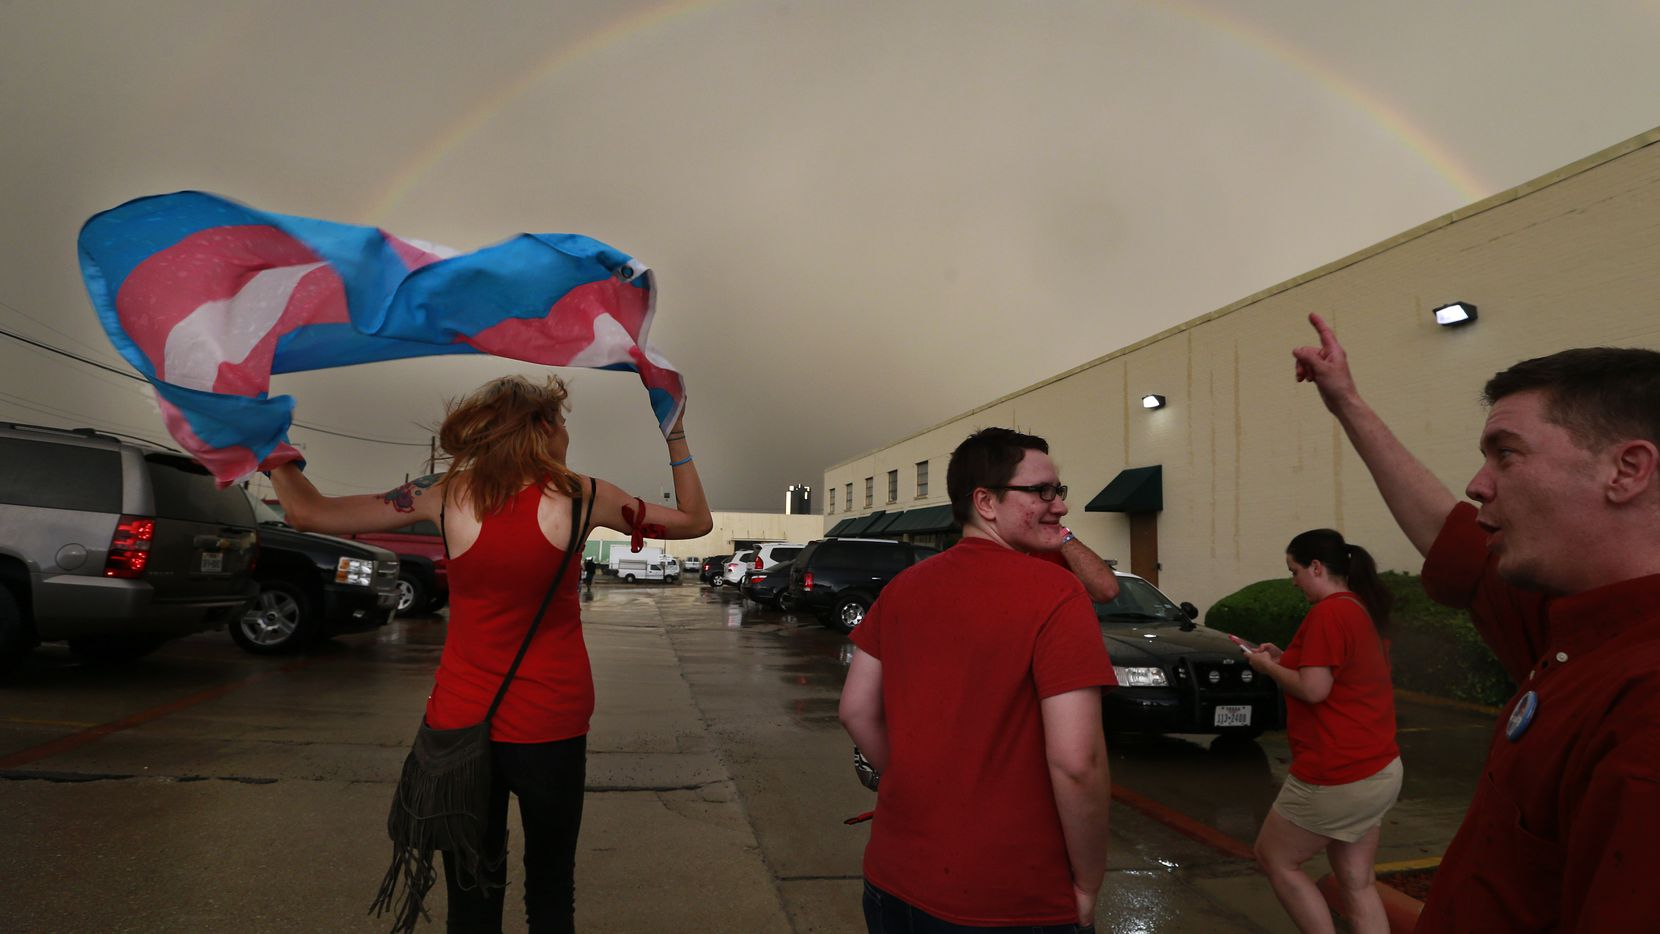 After a Fort Worth school district meeting earlier this year at which transgender policies in schools was discussed, a full rainbow appeared over the Fort Worth ISD complex. Leaving the meeting with flag over her head was Alison Francis of Hurst.